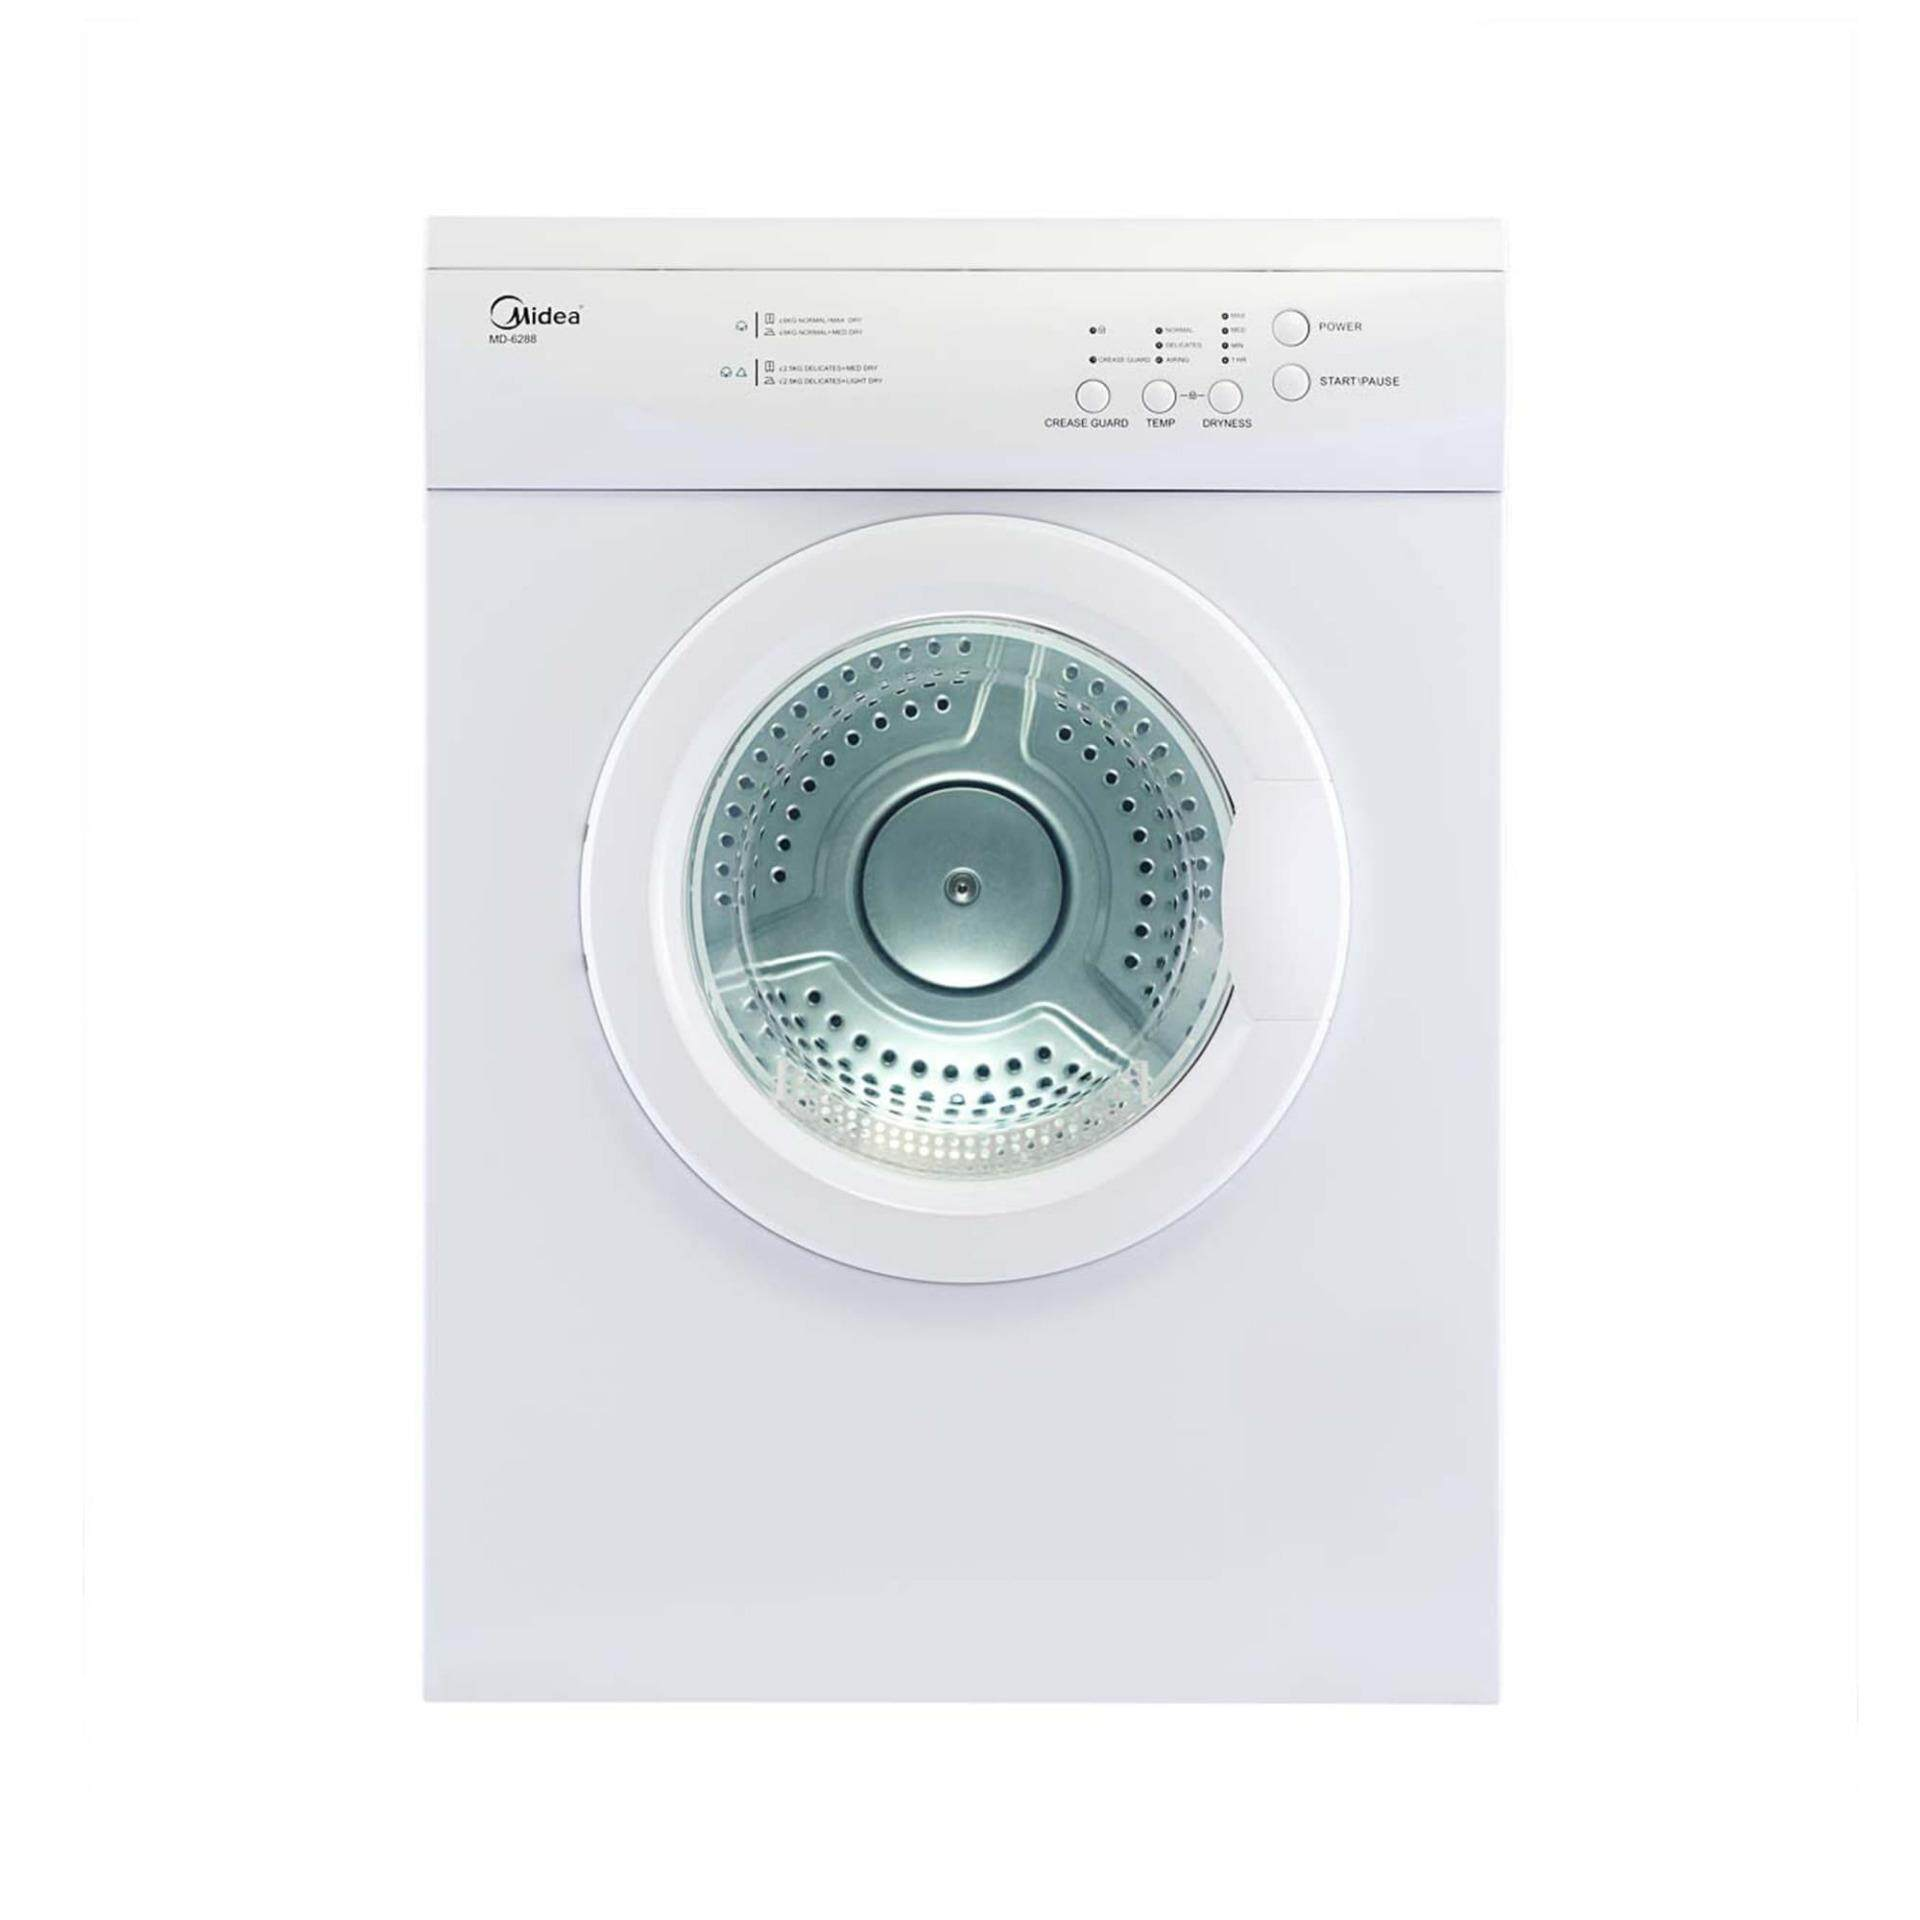 Buy Home Appliances And Kitchen At Youbeli Hitachi Air Purifier Ep A3000 W Midea Dryer Md 6288 60kg